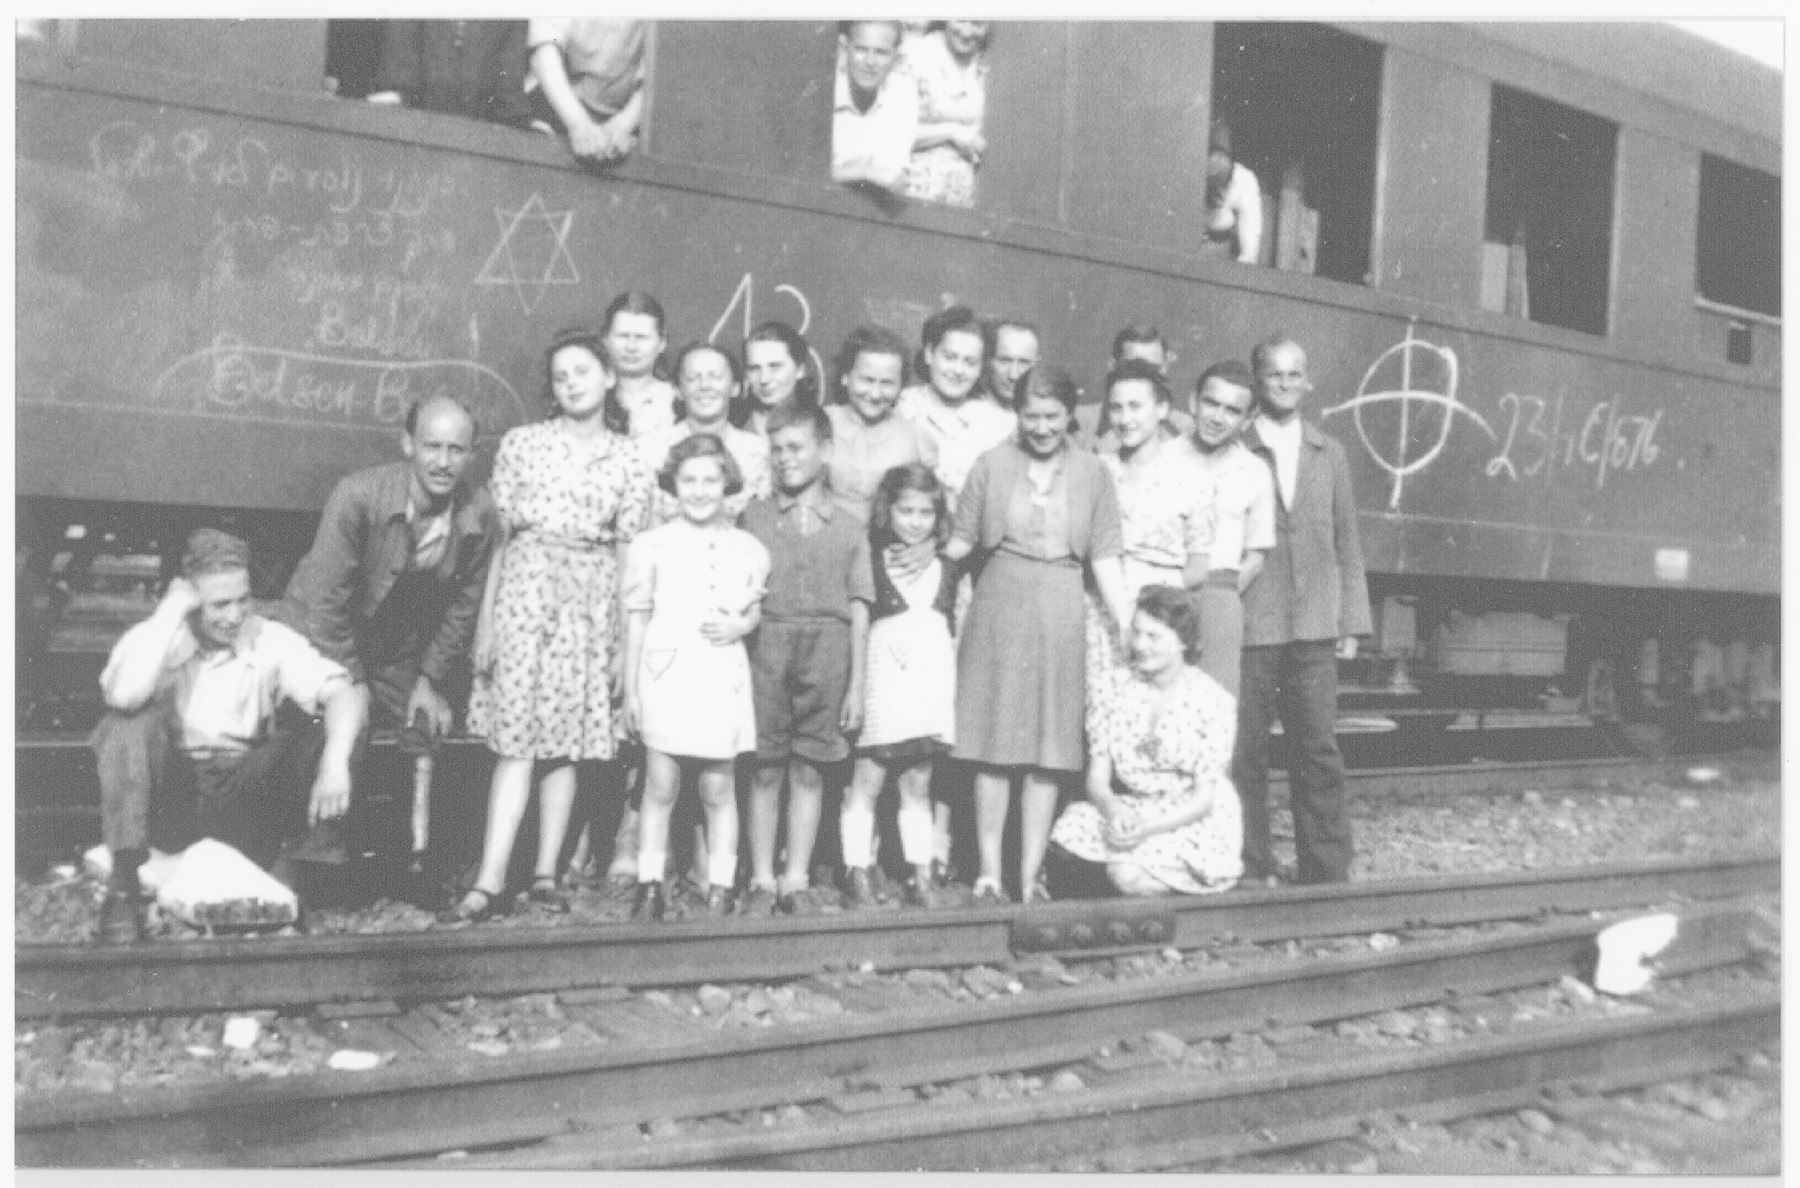 """Prisoners from an evacuation train from Bergen-Belsen pose next to a railroad car in Magdeburg.    This photo was probably taken  a few days after liberation since written on the side of the car is """"Bergen-Belsen"""" and """"We are going to Israel by way of France.""""  Pictured are the donor's stepfather, Chil Elbaum (back center), Maurice (second from the right), Esther (standing third from the right) and Chaim Elbaum (sitting on the far left)."""